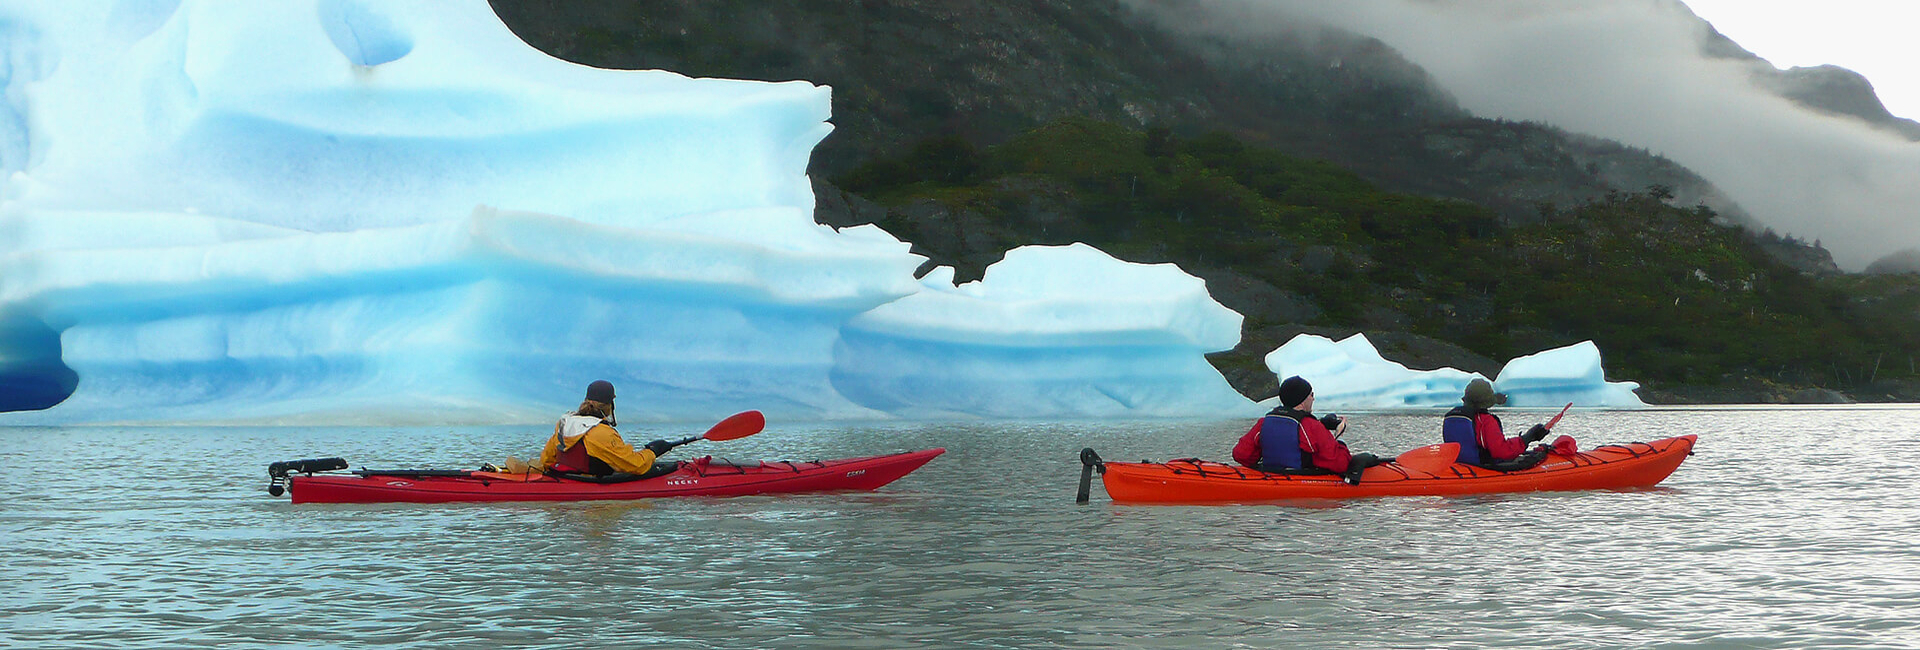 Kayak in Patagonia, Torres del Paine National Park